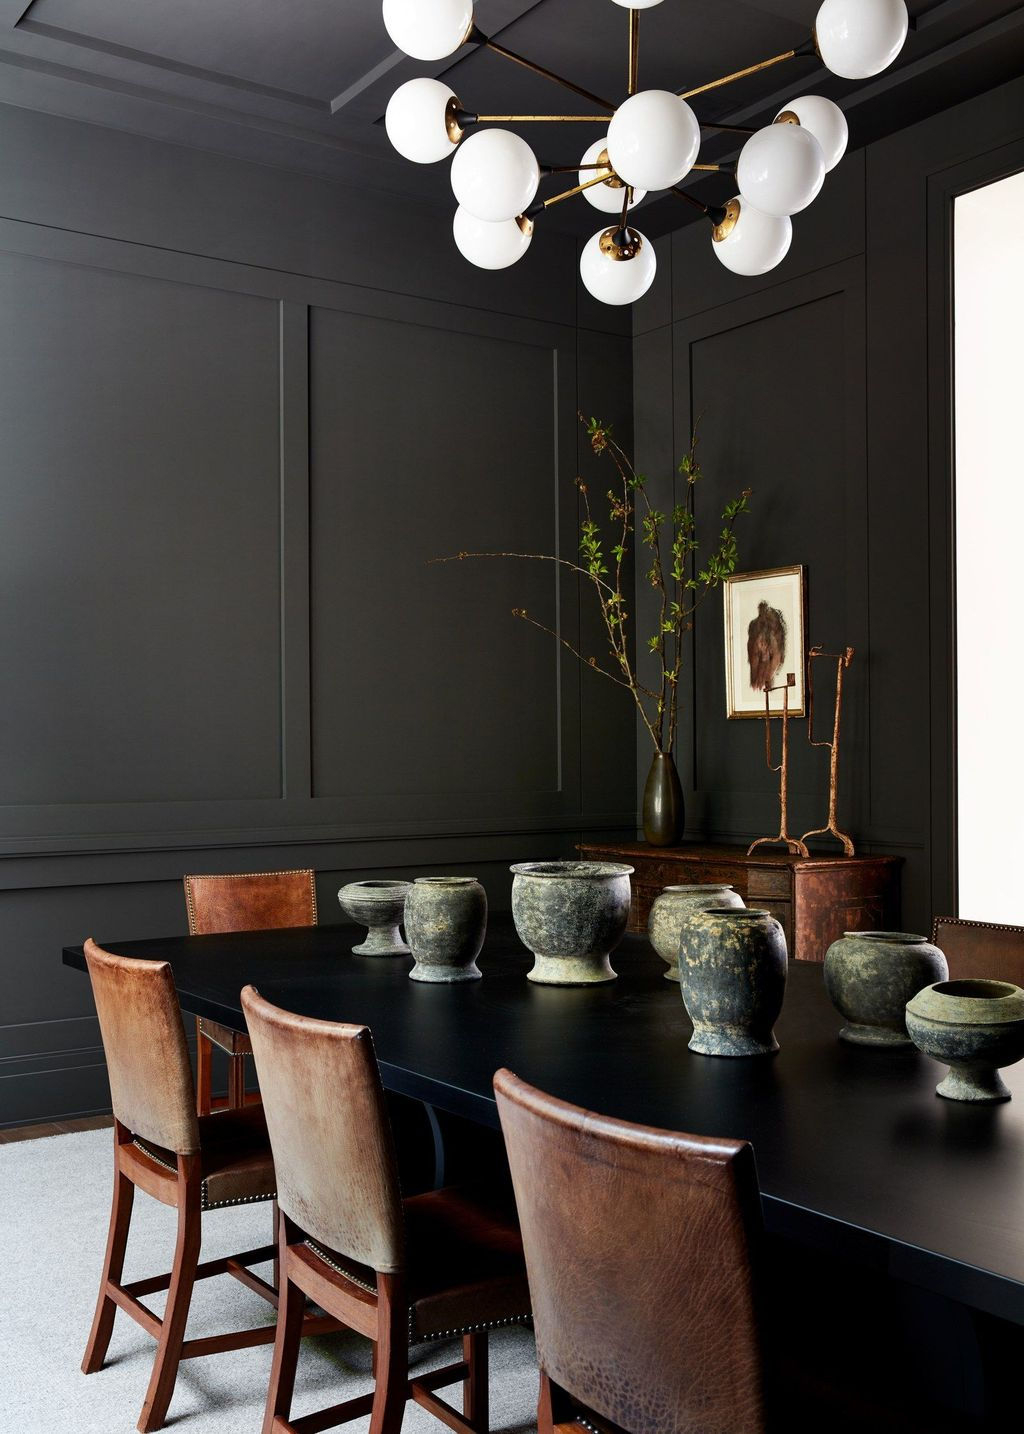 Admirable Dining Room Design Ideas You Will Love 37 1